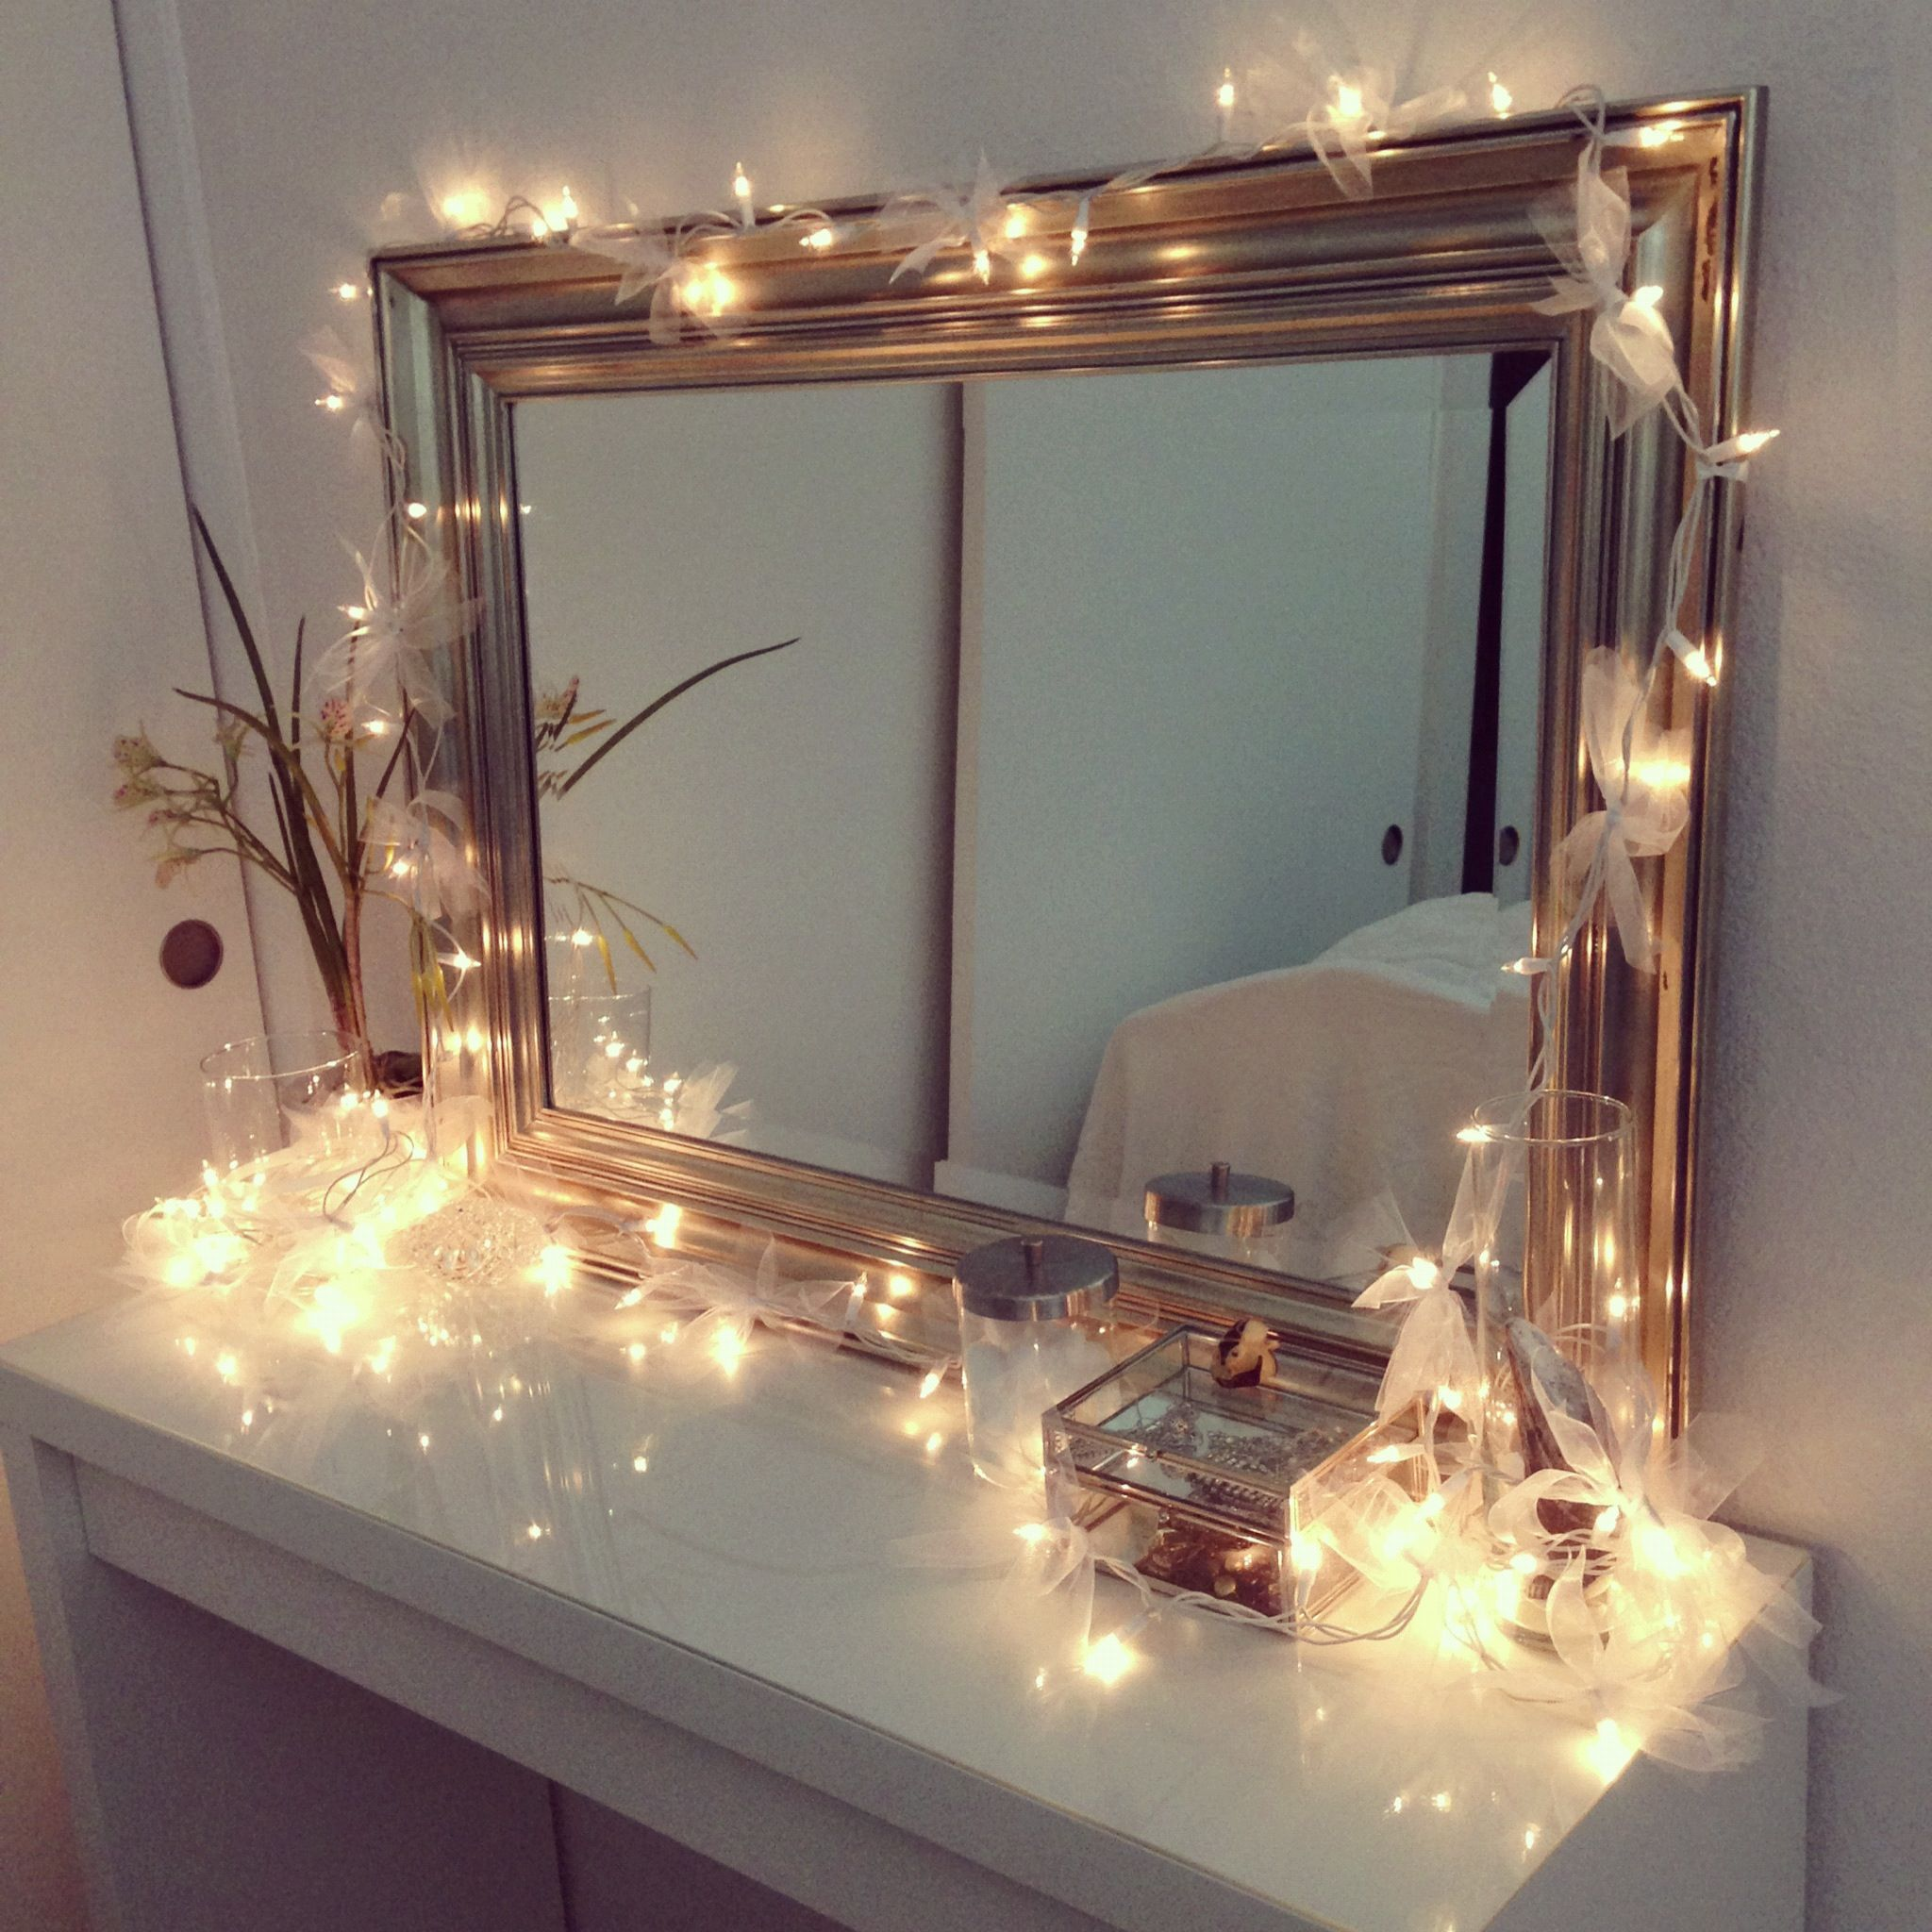 my vanity setup! ikea vanity decorated with christmas lights and